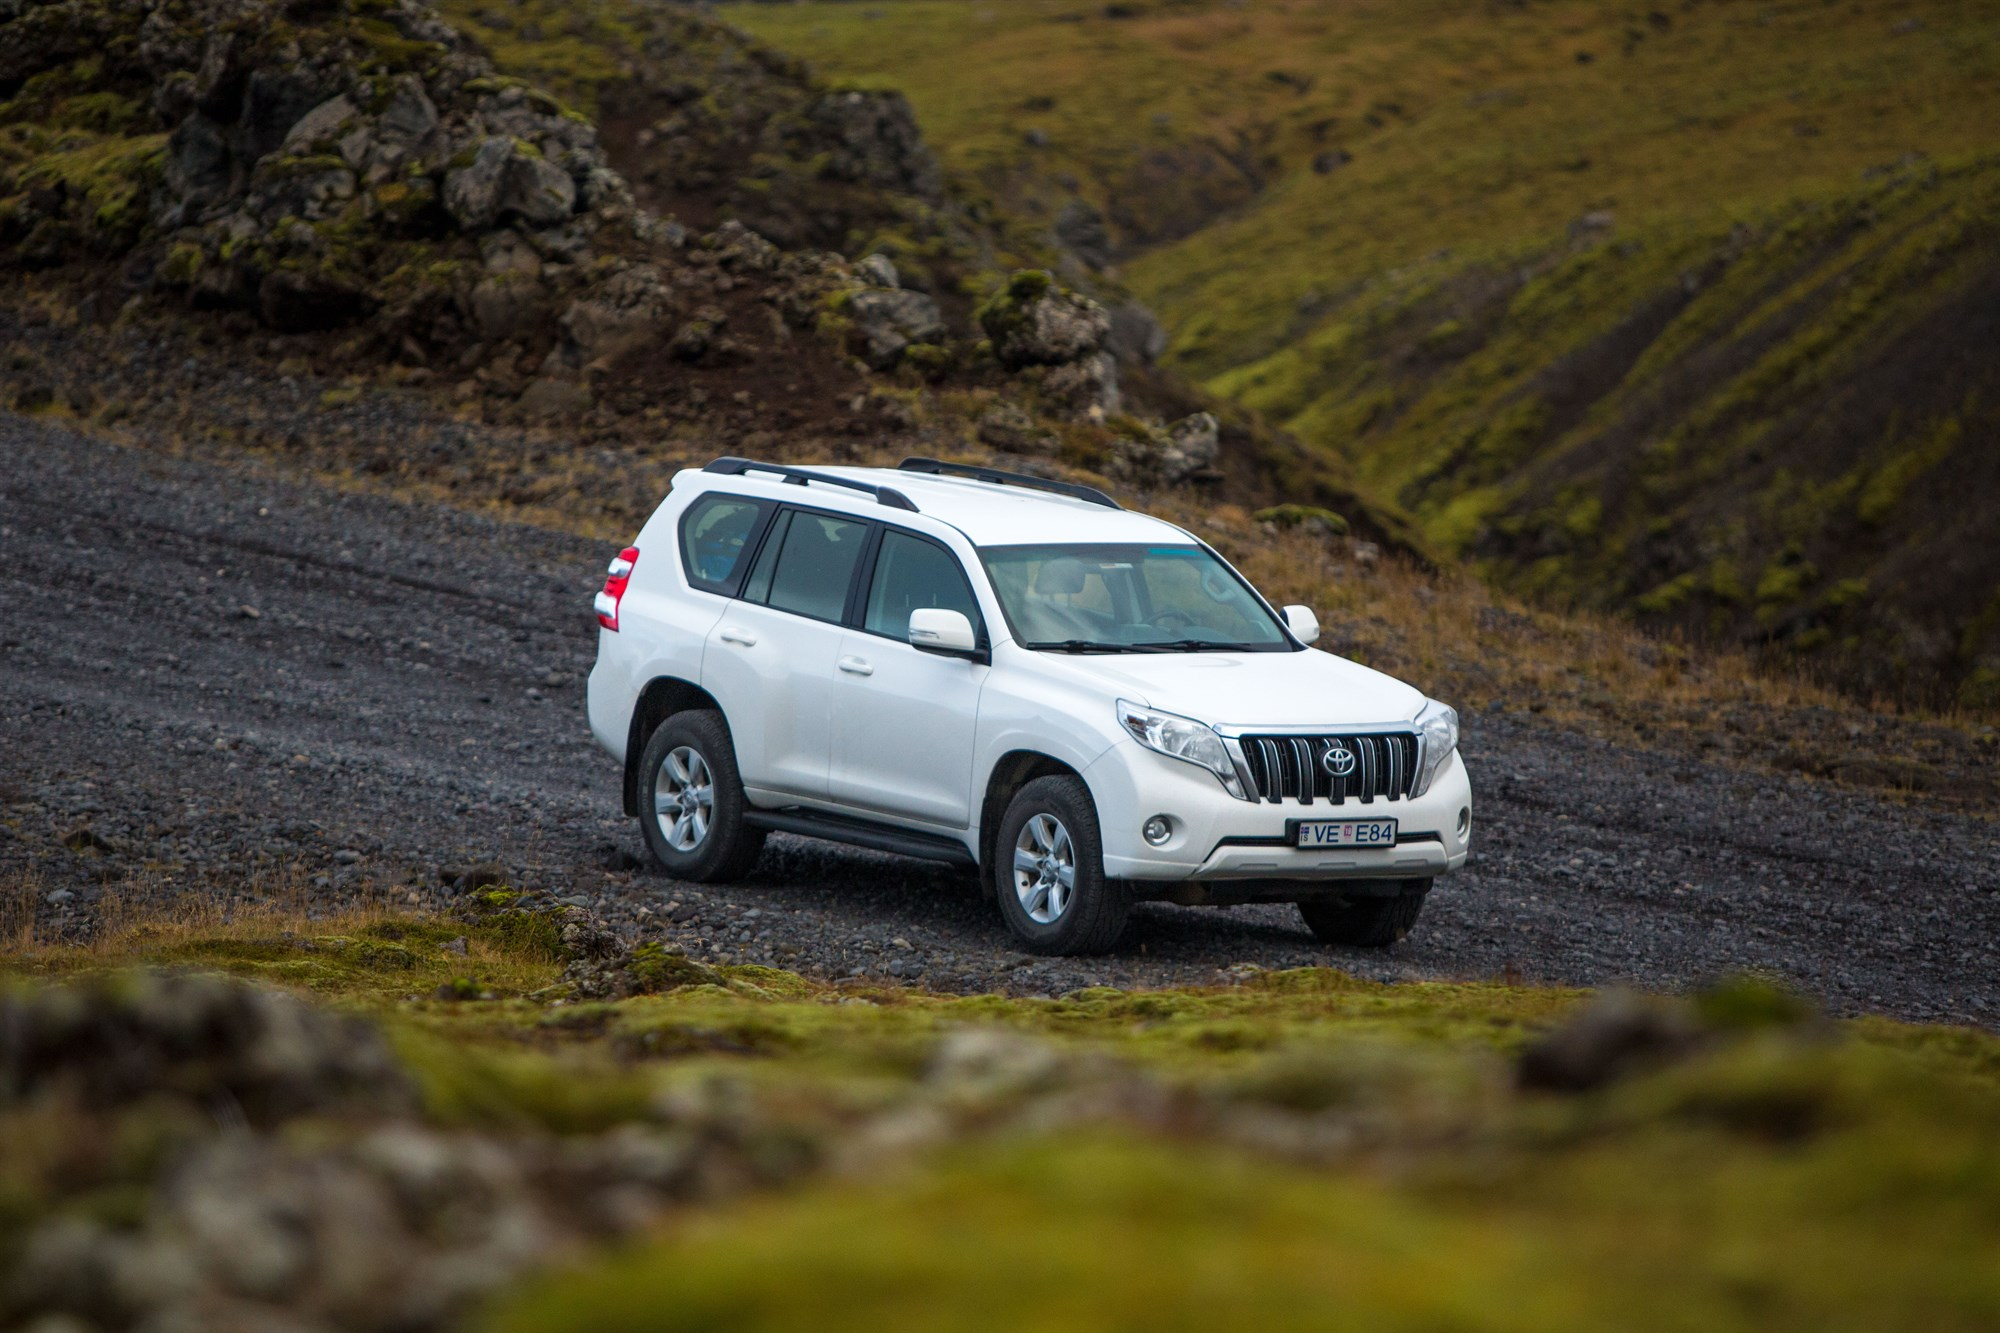 How to Select the Right Car for Your Iceland Trip